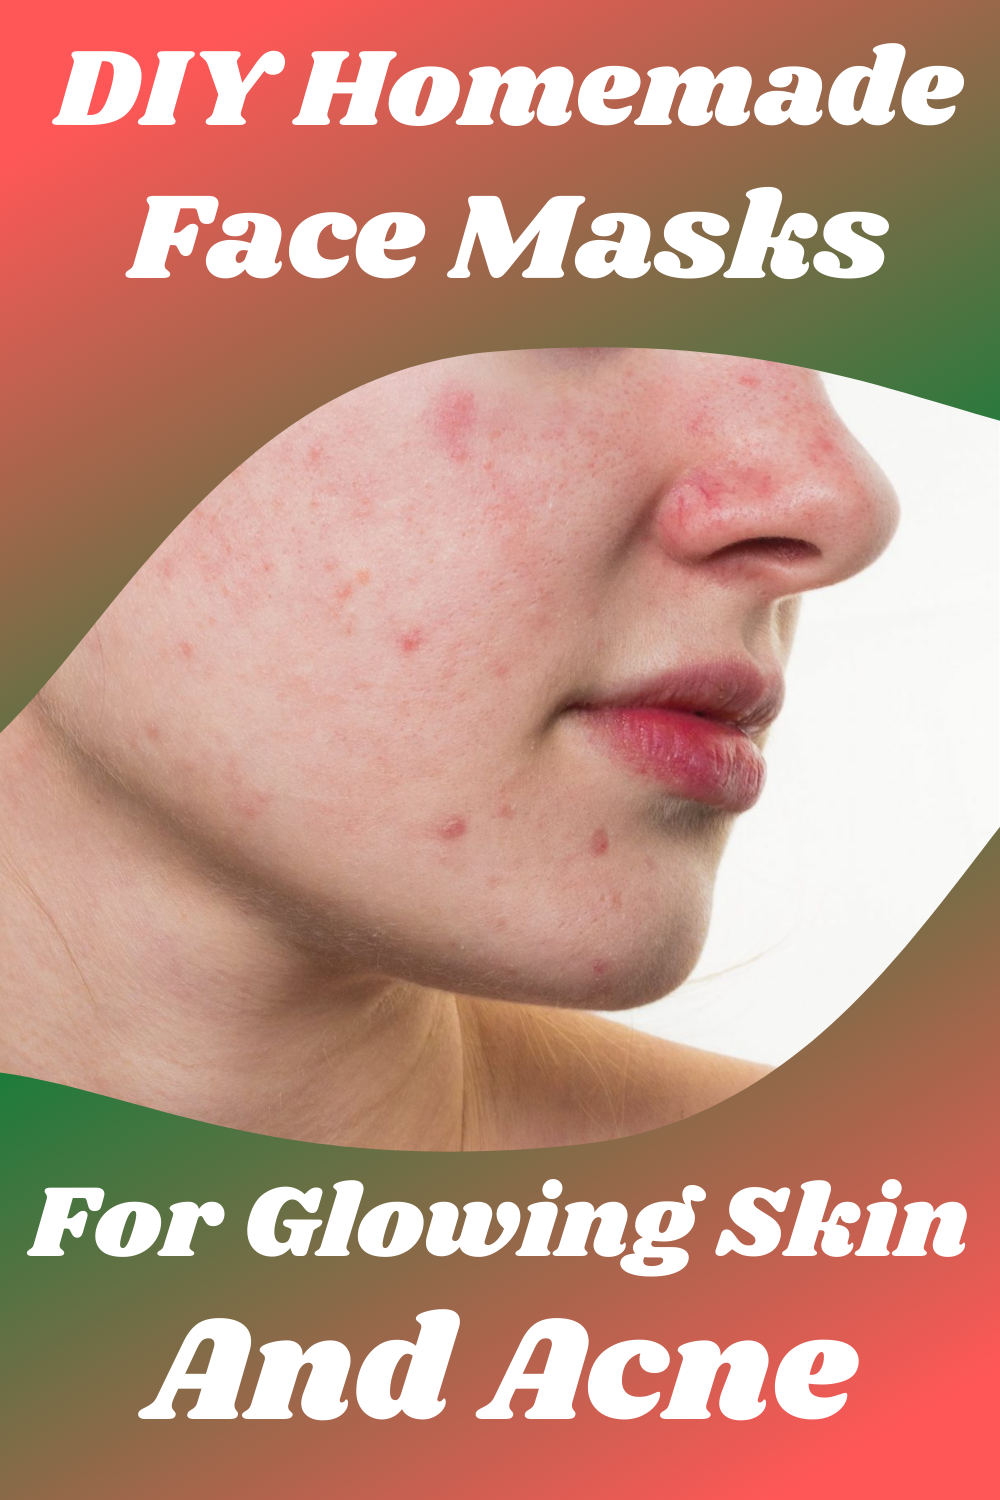 Photo of DIY Homemade Face Masks For Glowing Skin and Acne